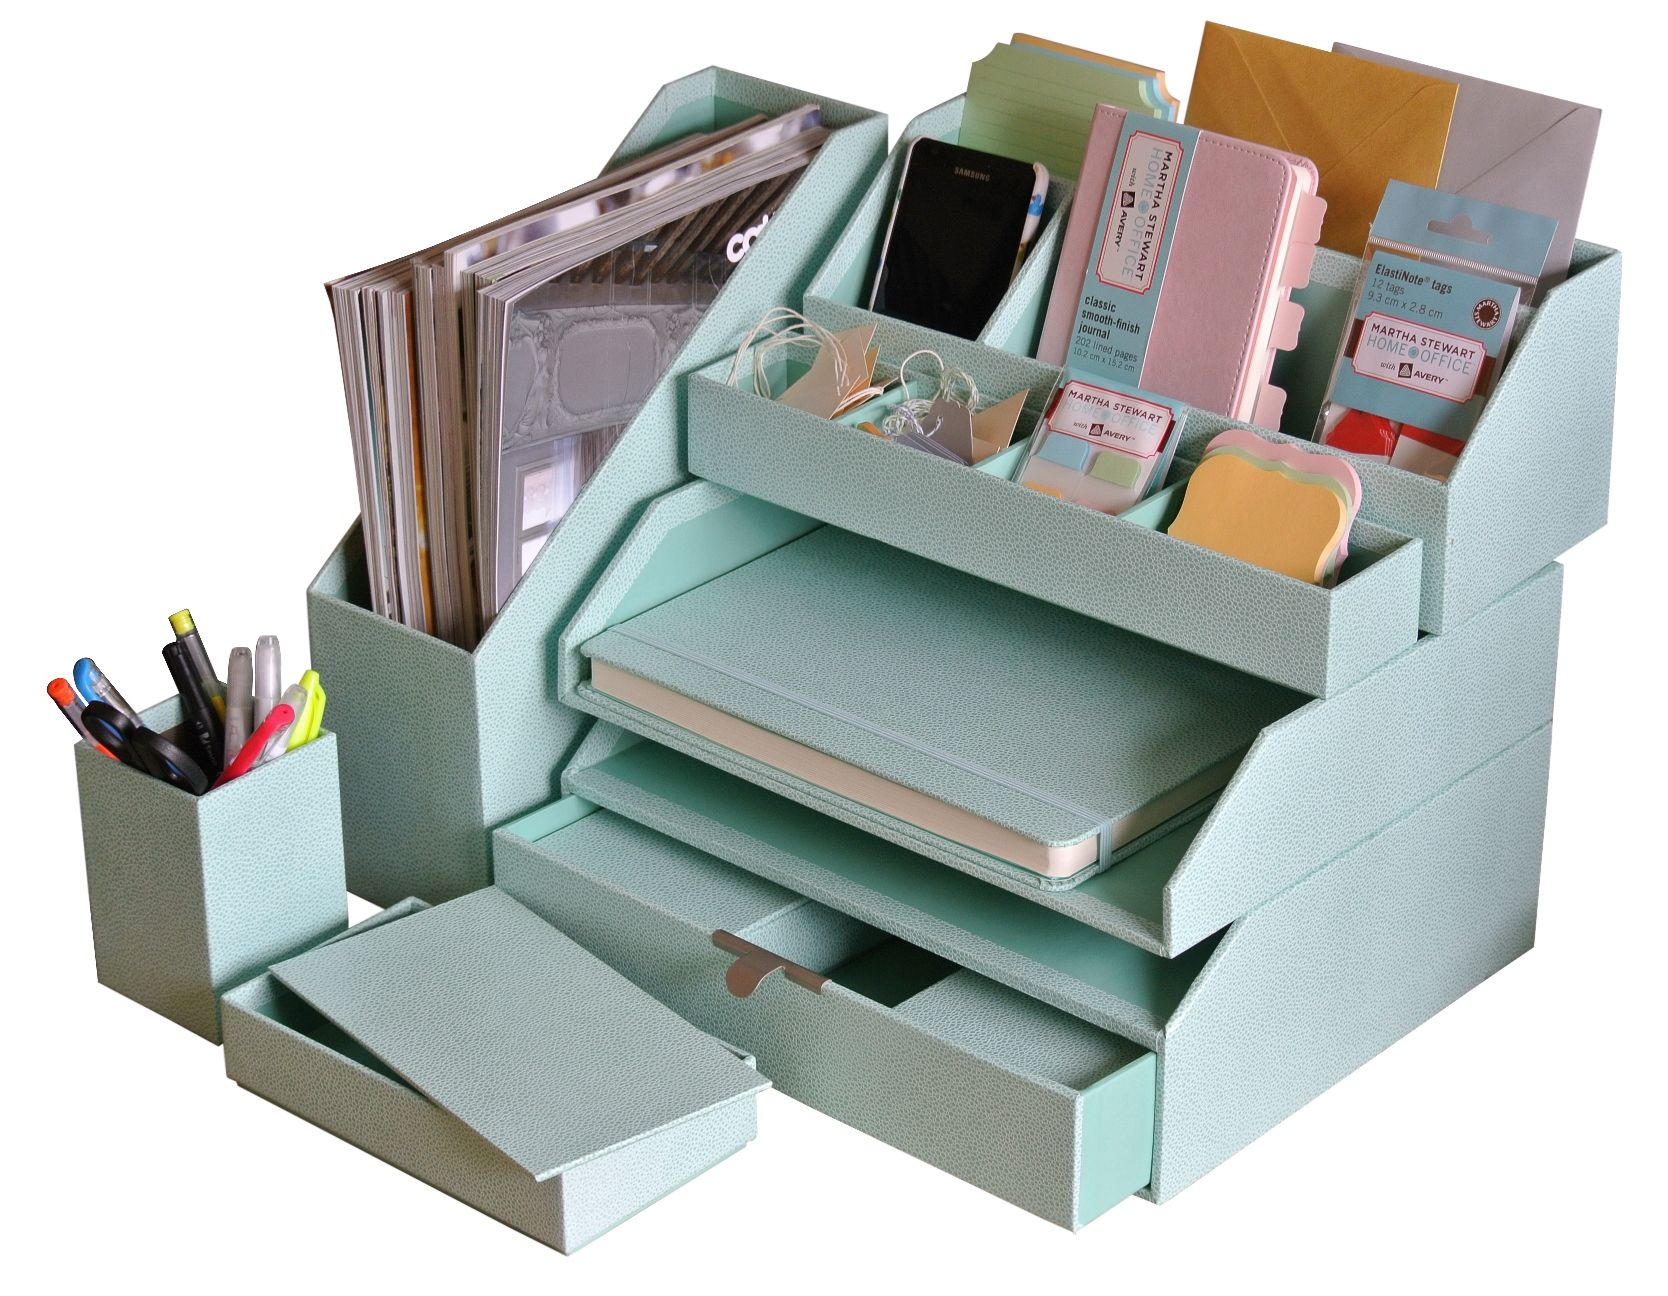 Genial Our Solution For A Small Space   Martha Stewartu0027s Stack+Fit Desk Accessories  Available Online